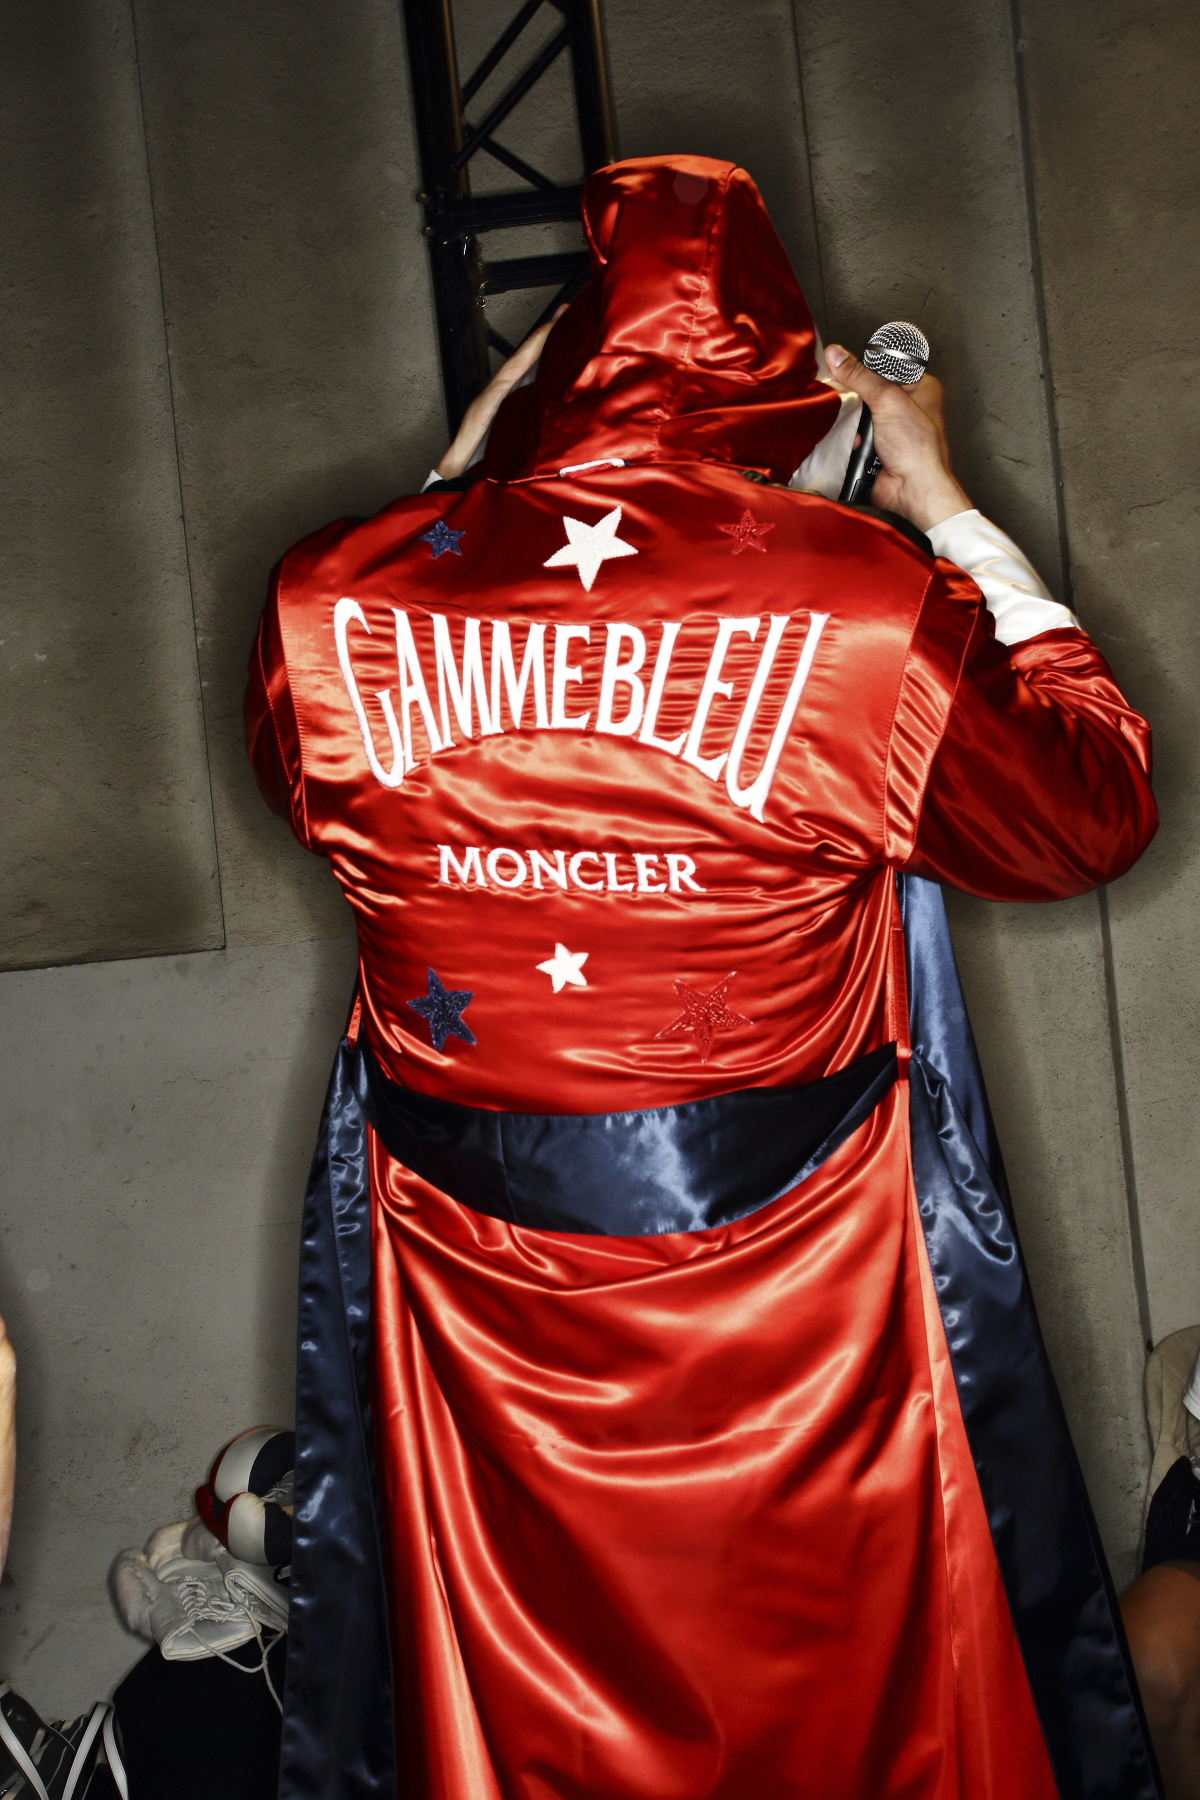 Moncler Gamme Blue SS15 Fashion Show Milan Backstage